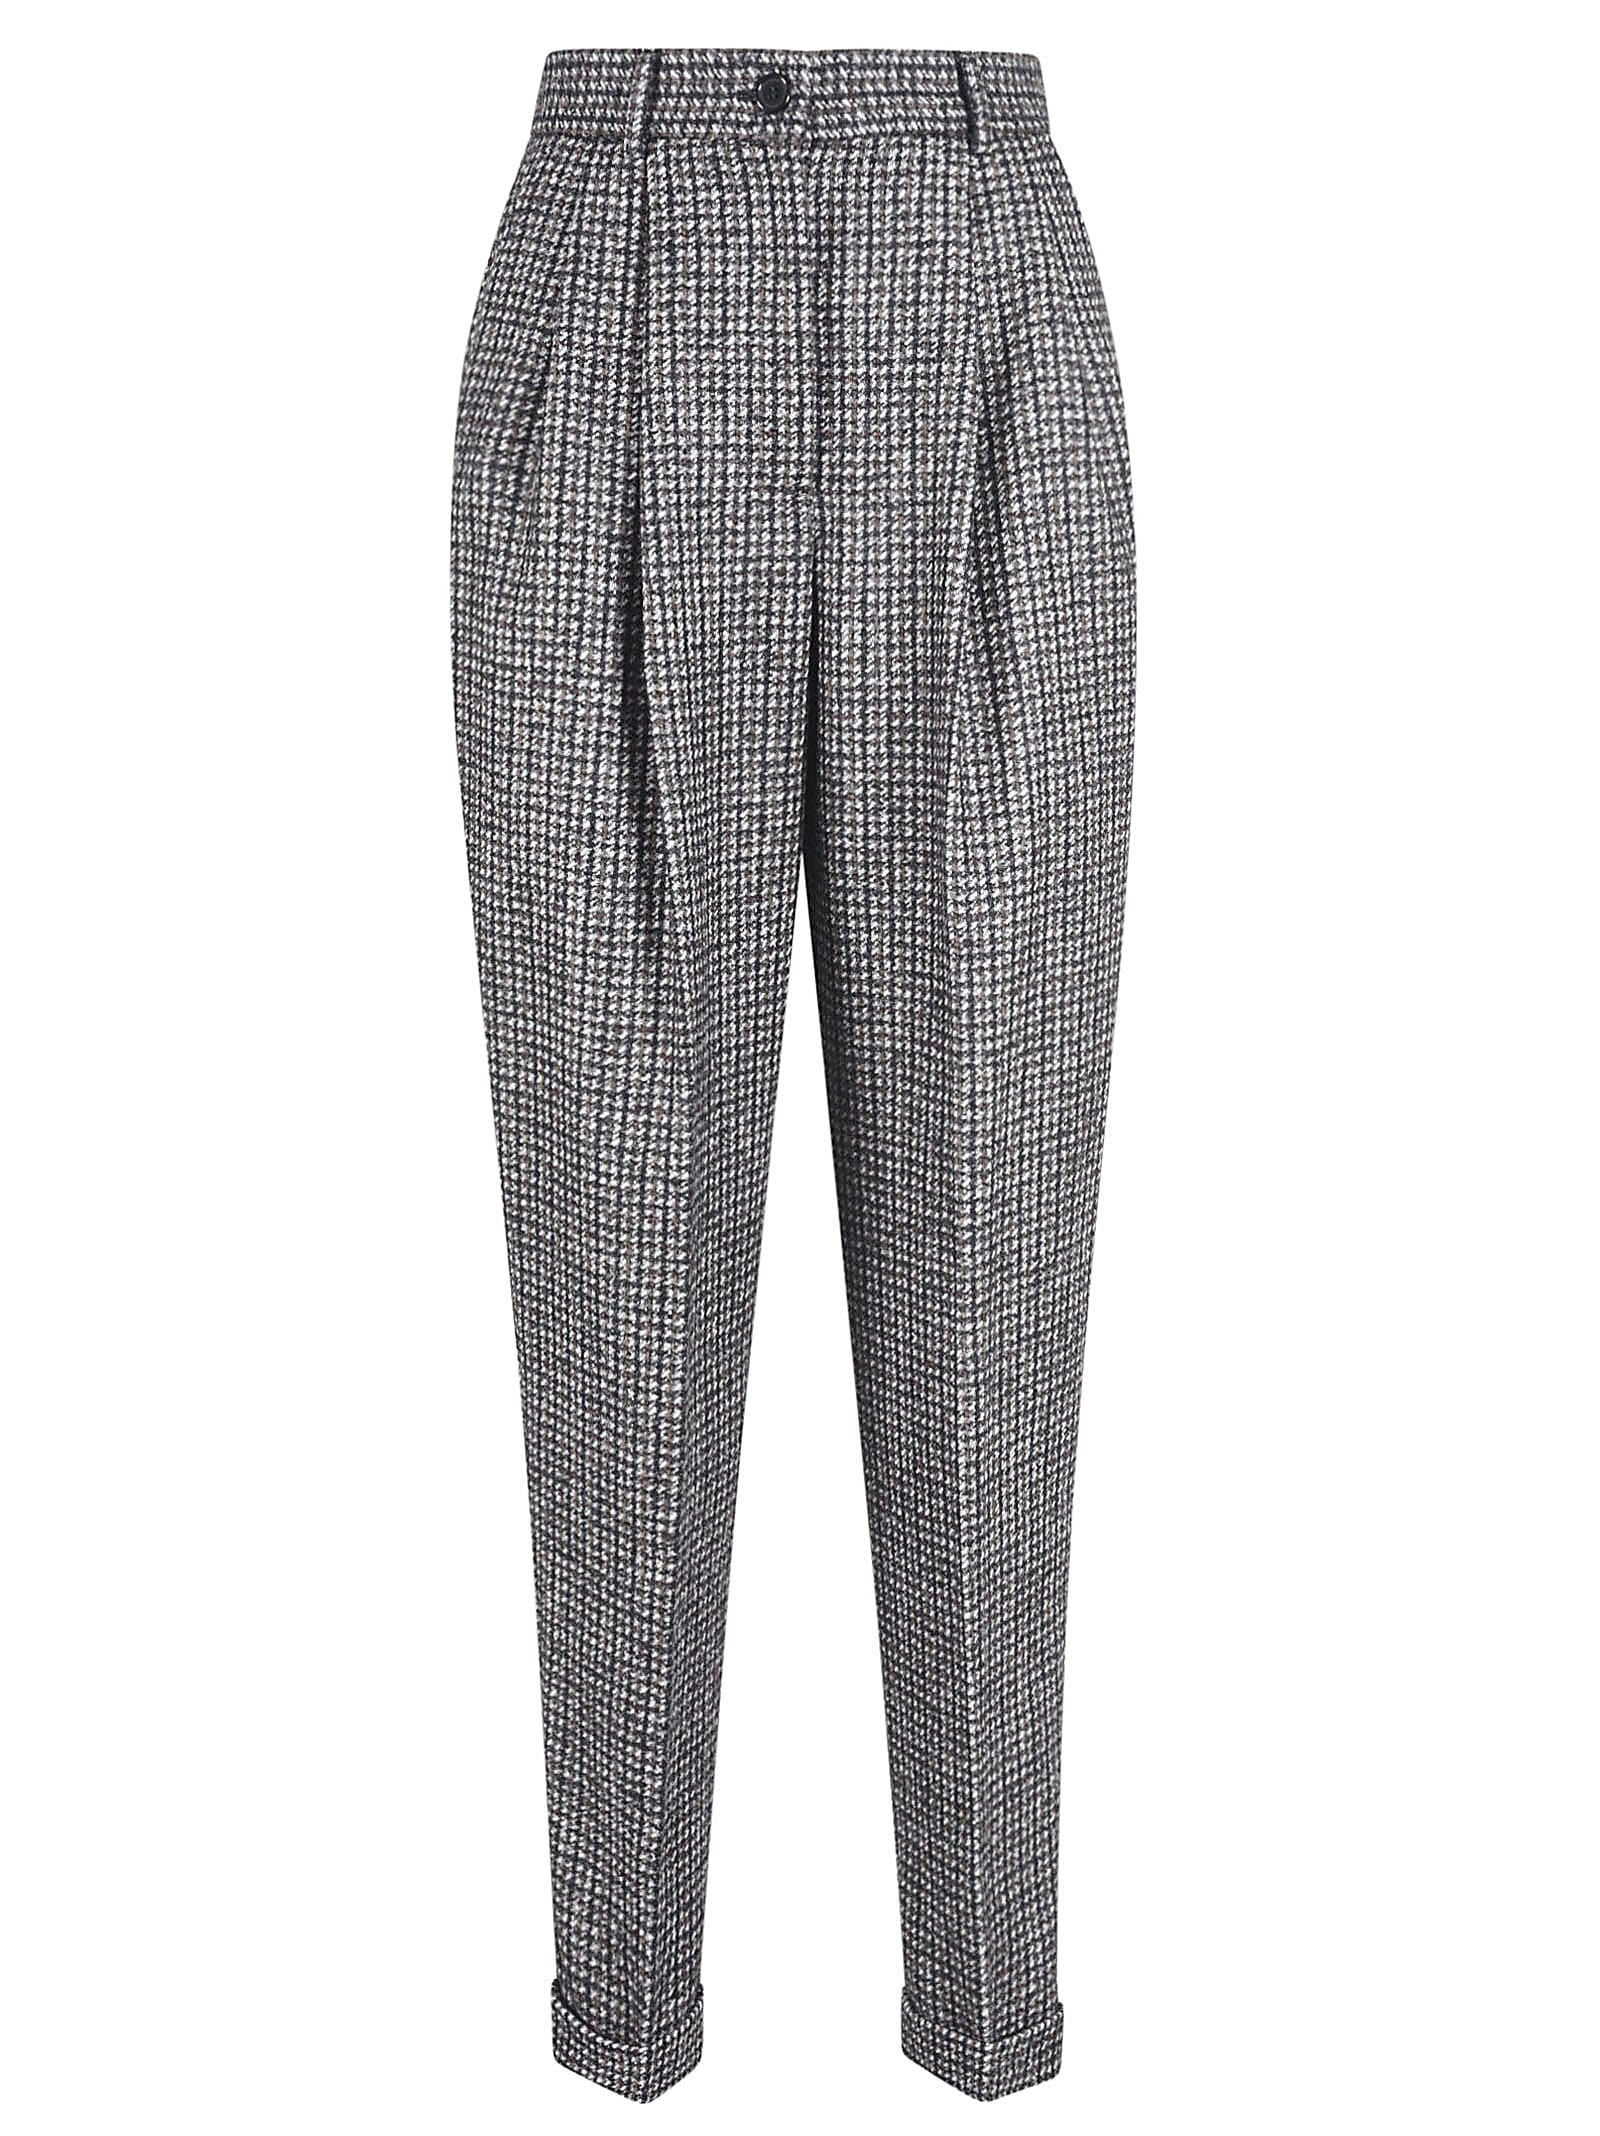 Dolce & Gabbana Slim Checked Trousers